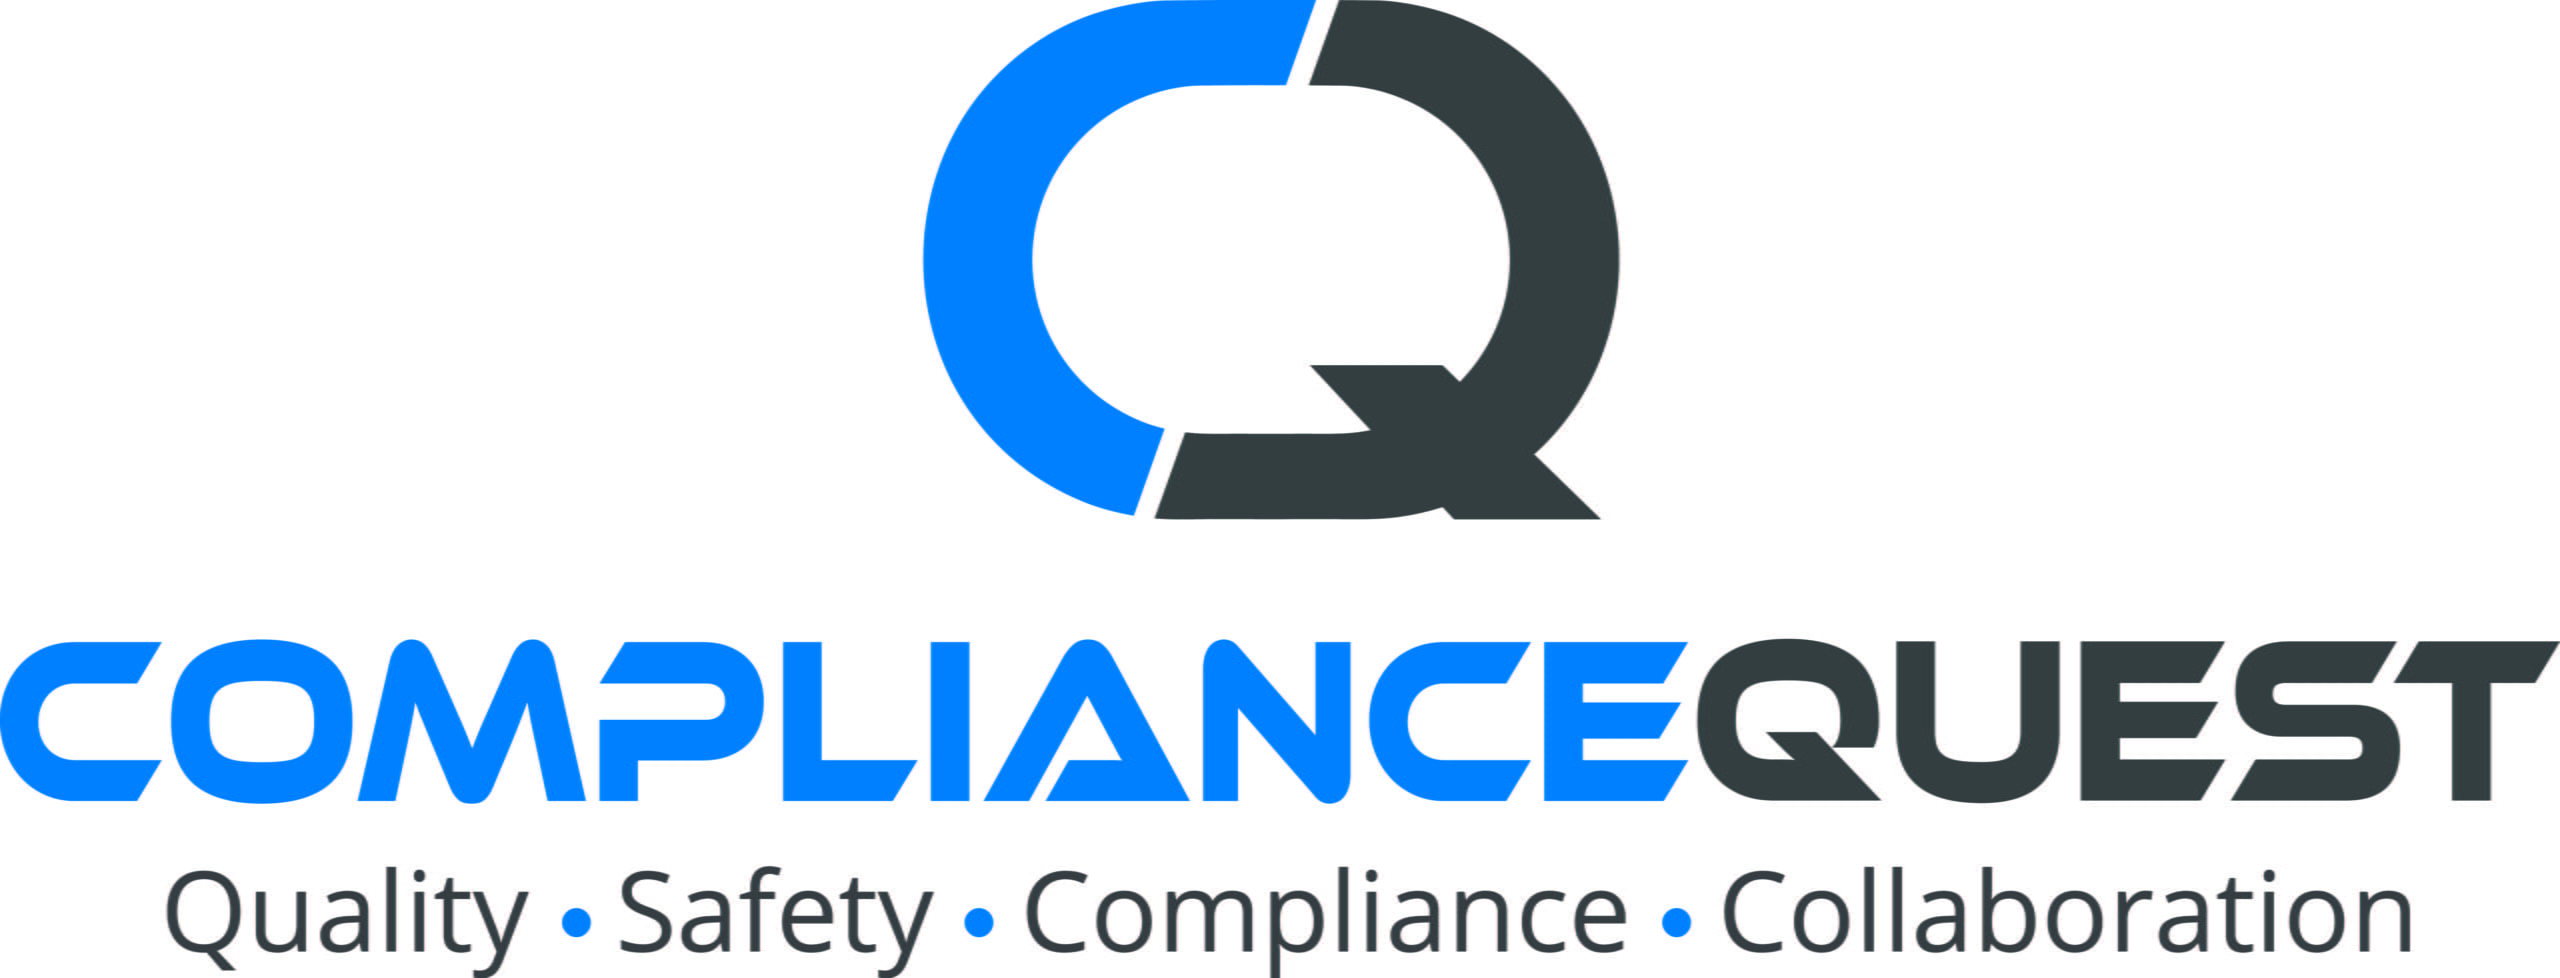 ComplianceQuest Successfully Demonstrates Its Commitment to Deliver High-Quality Solutions and Achieves ISO 9001 Certification